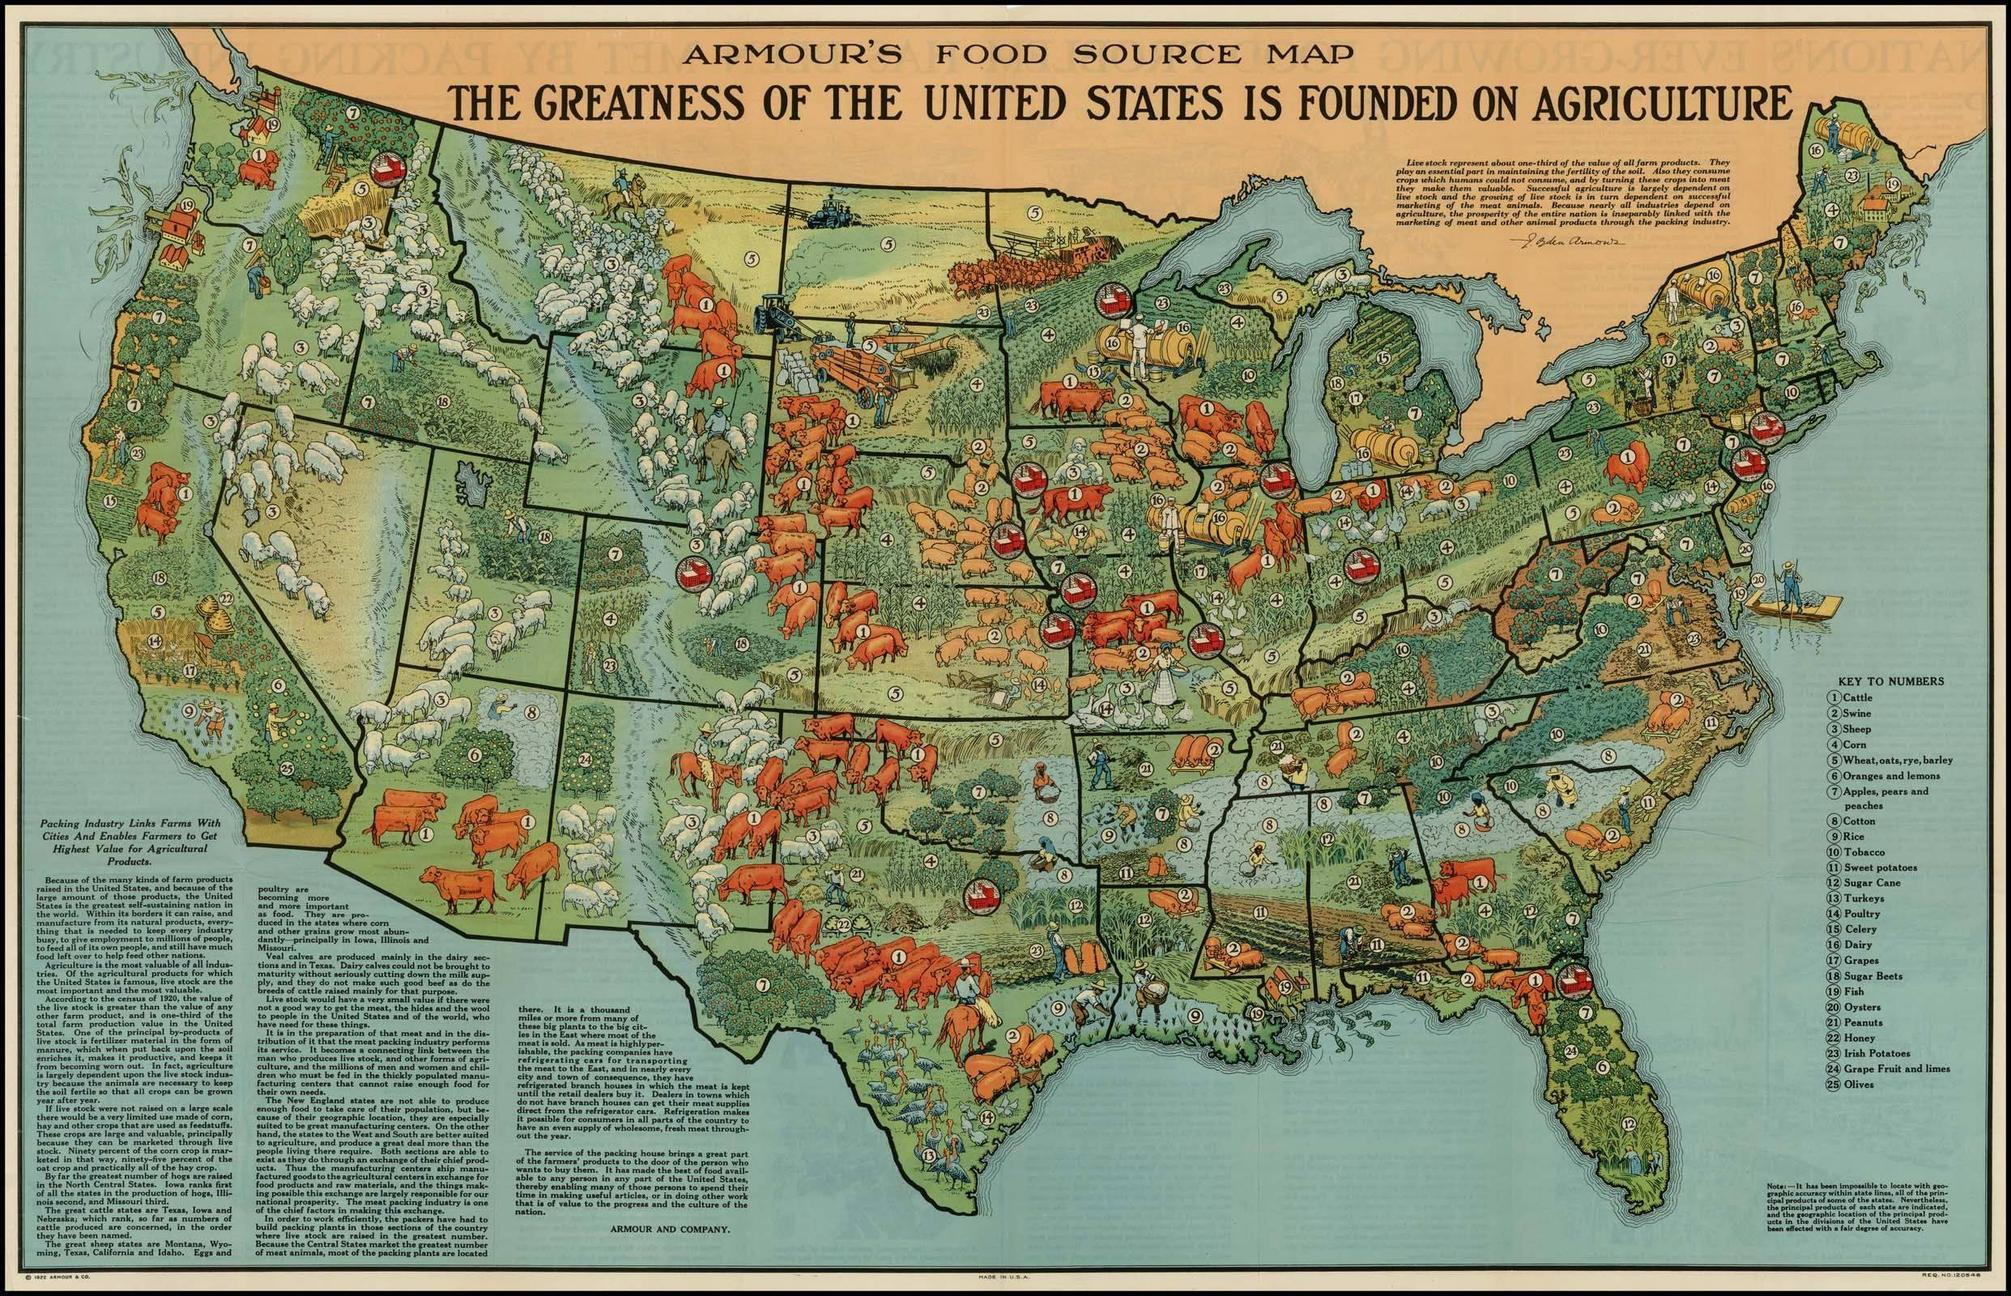 Maps That Explain Food In America Voxcom - Us food desert map